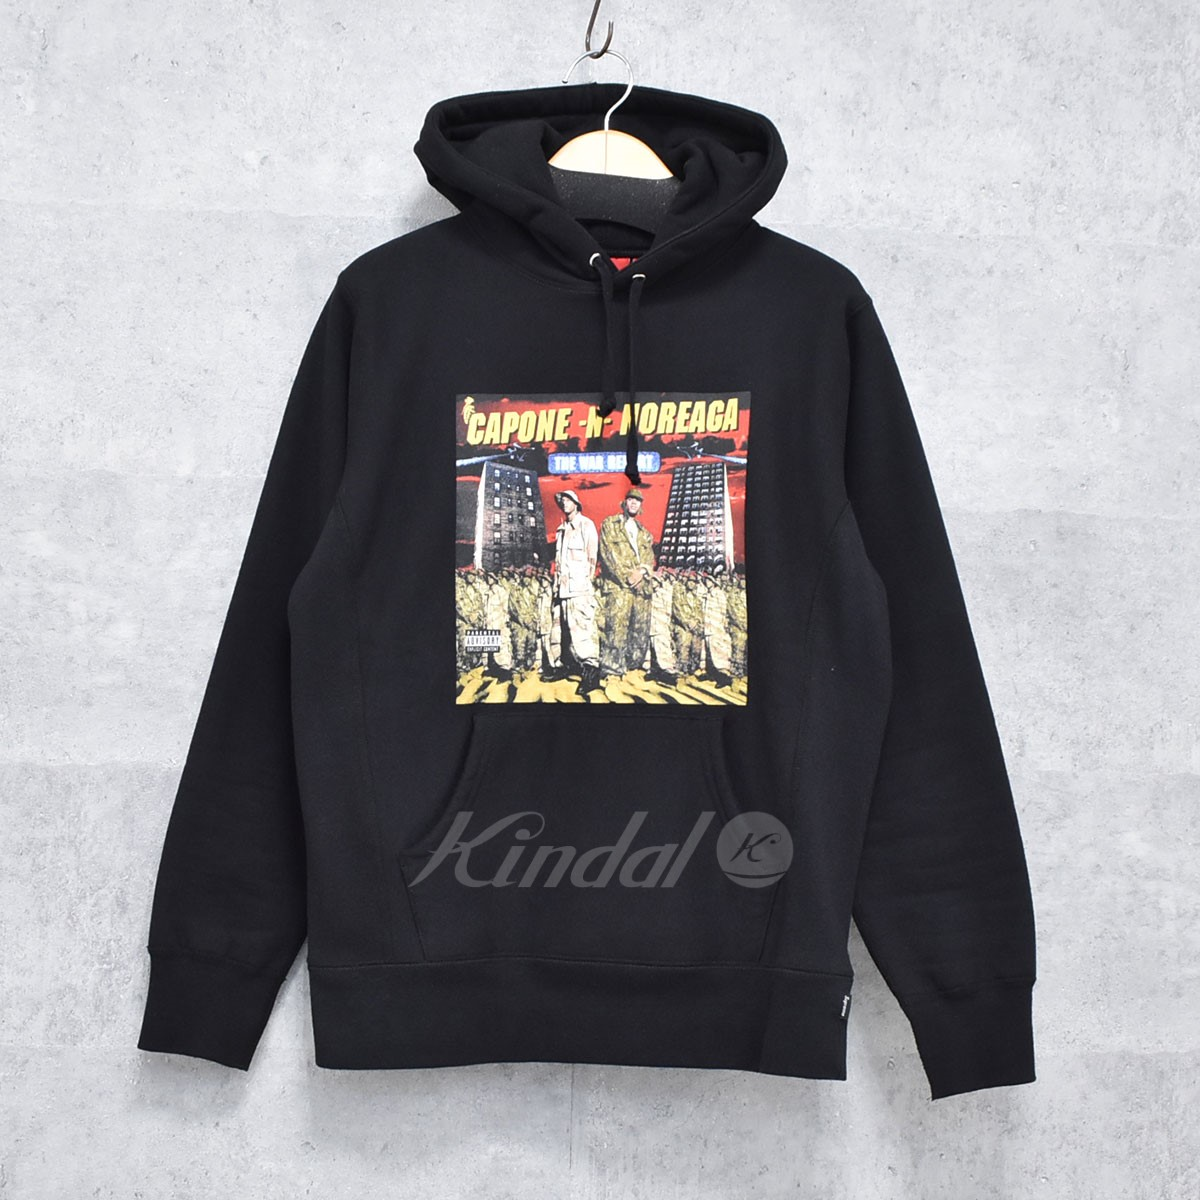 【中古】SUPREME 16AW  the war report hooded sweatshirt プルオーバーパーカー 【送料無料】 【002331】 【KIND1550】